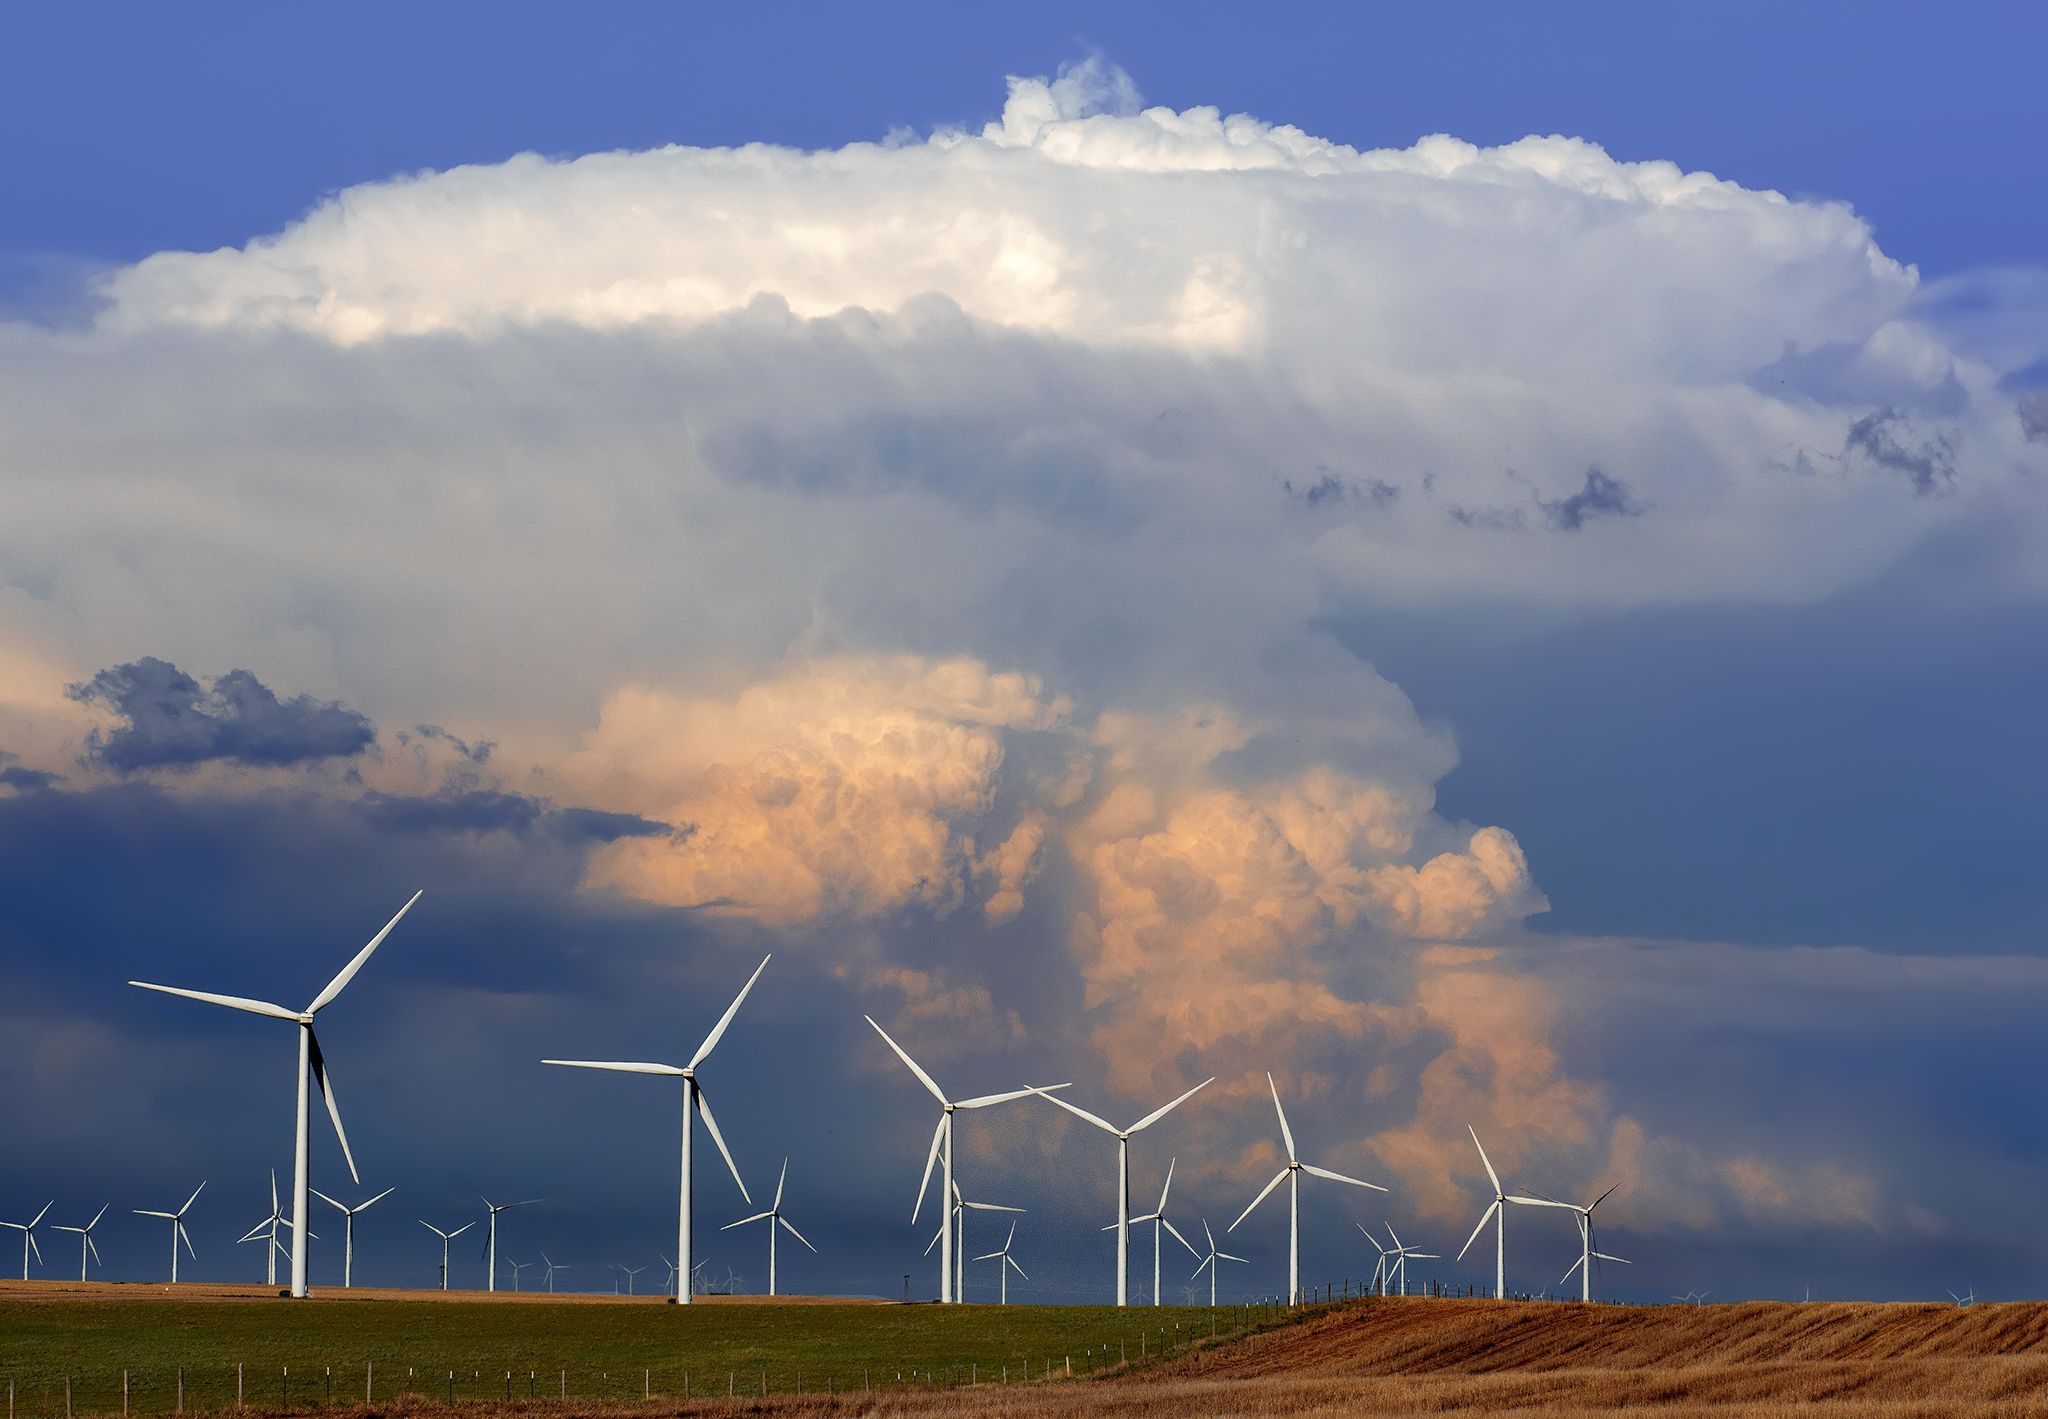 Wind turbine wallpapers backgrounds - Hd images download ...